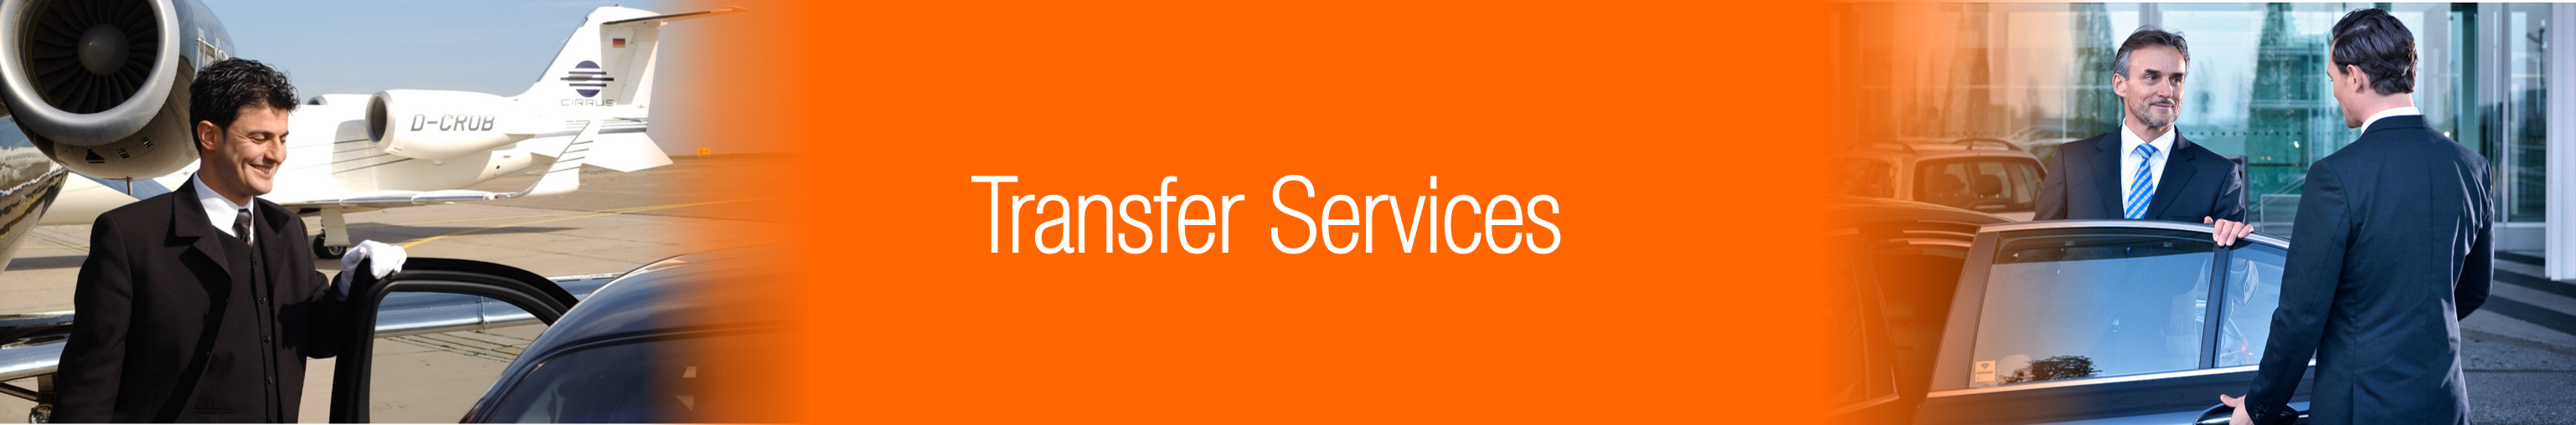 Transferservices